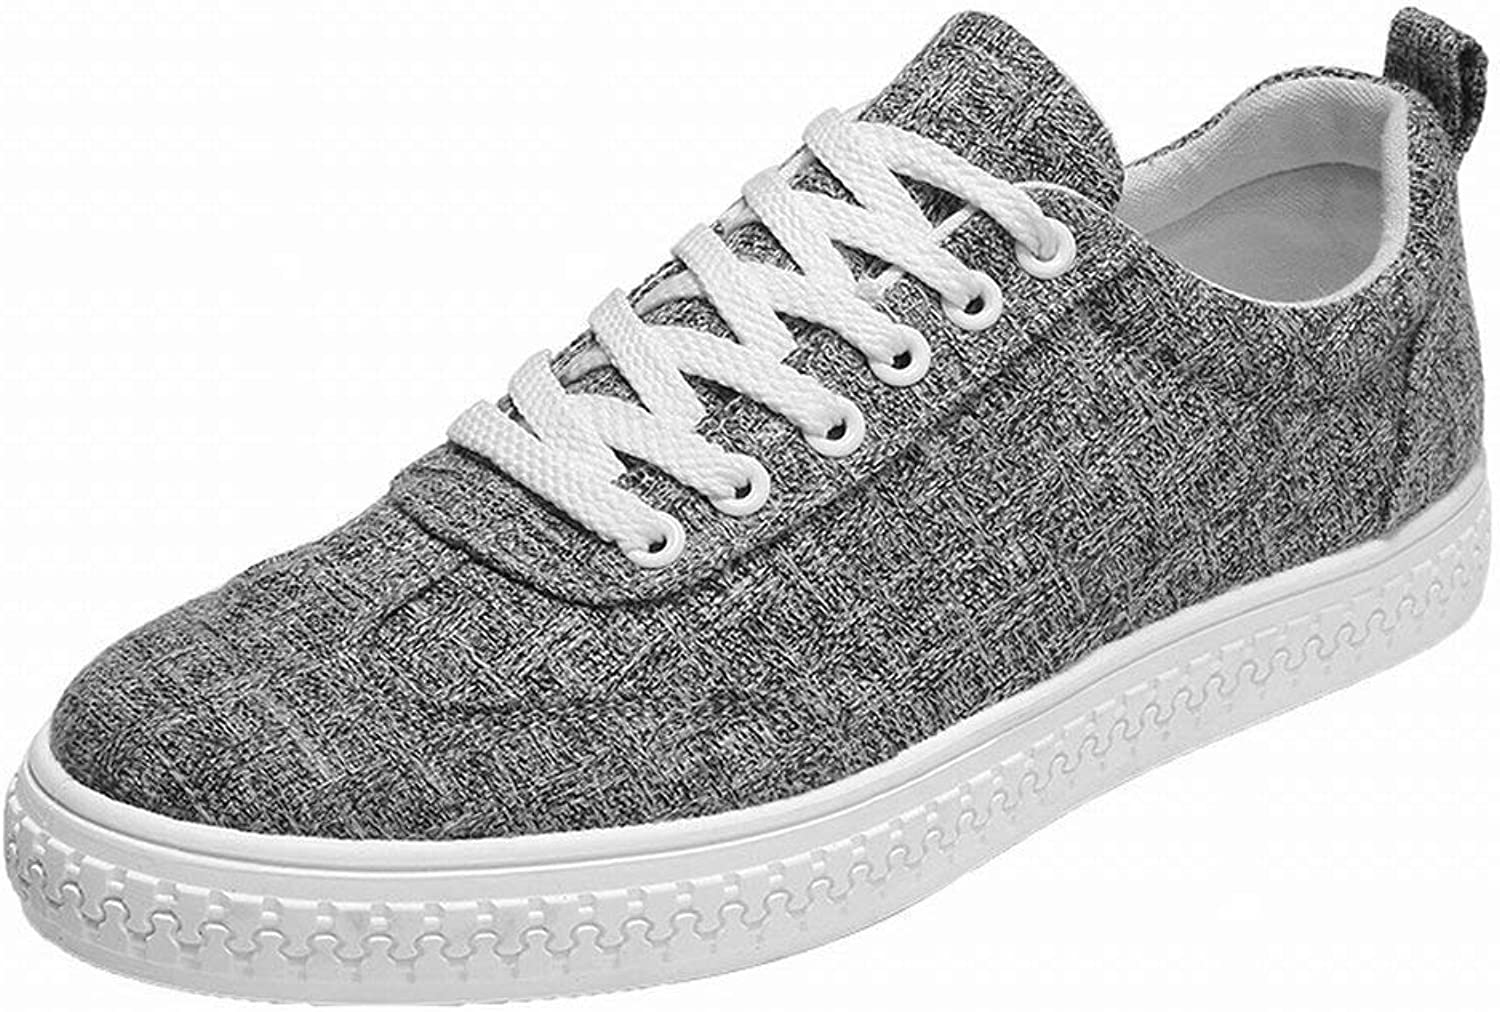 Fuxitoggo Fashion Trend Canvas Canvas shoes Comfortable Breathable Casual All-match Men's shoes (color   Dark grey, Size   UK 6.5)